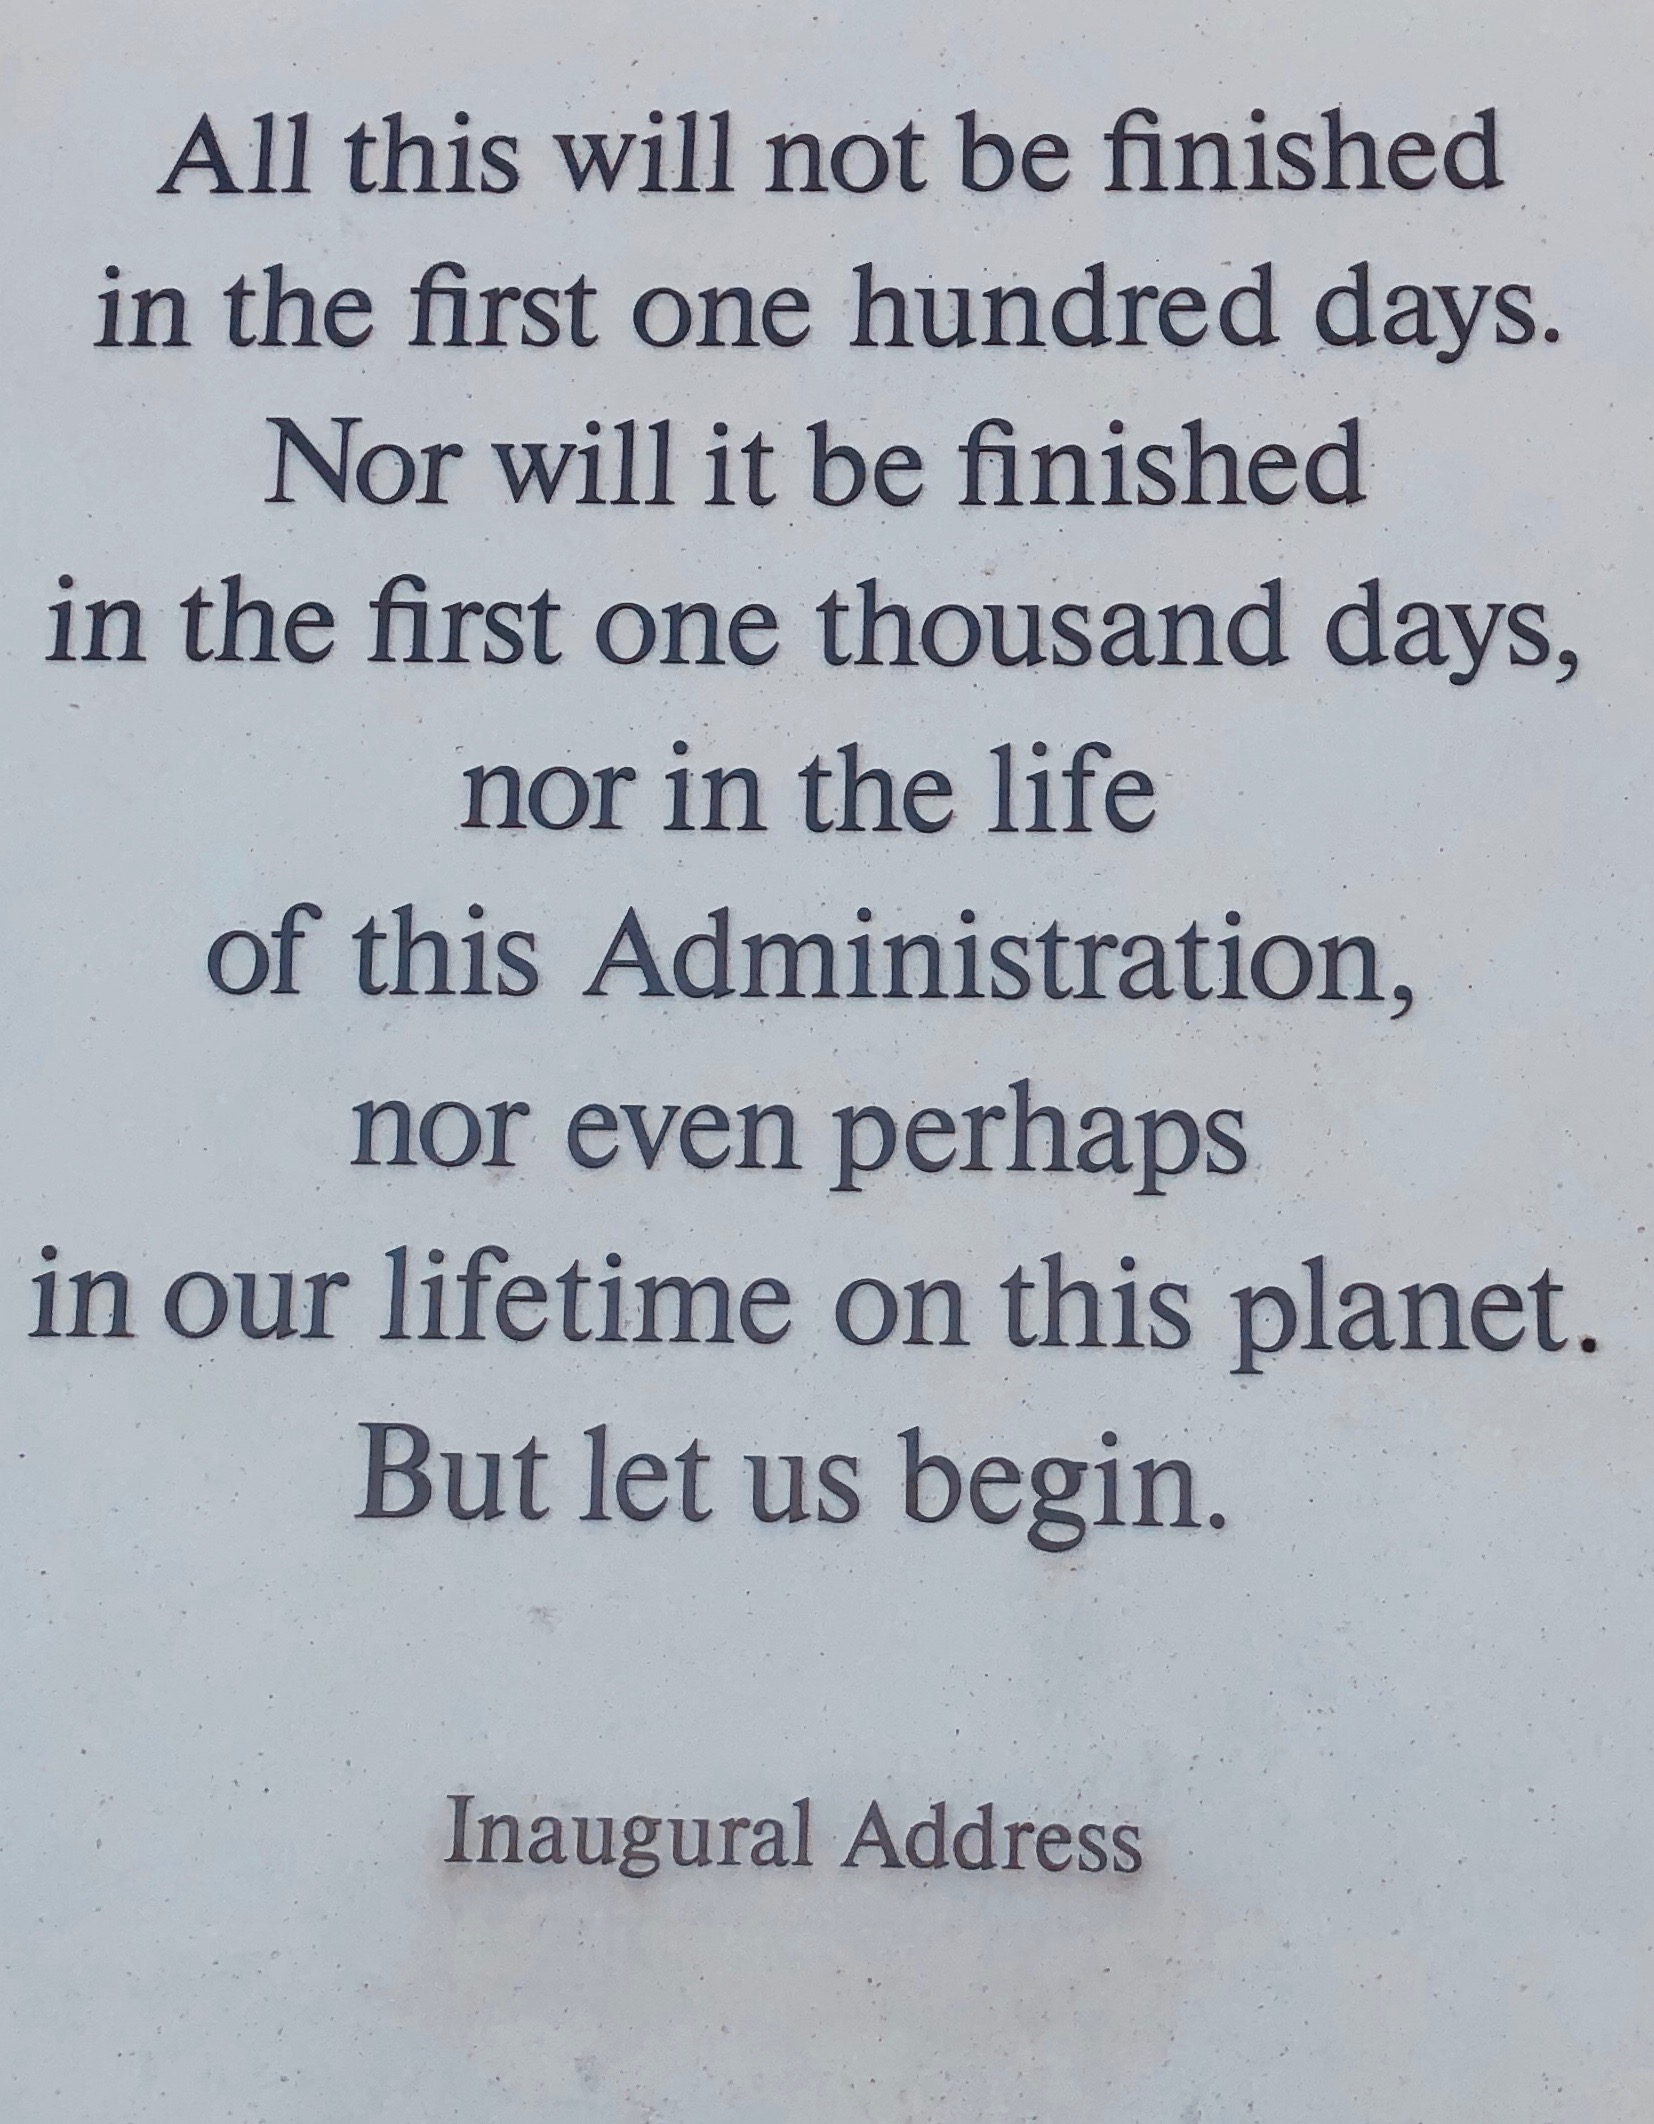 from John F. Kennedy's Inaugural Address